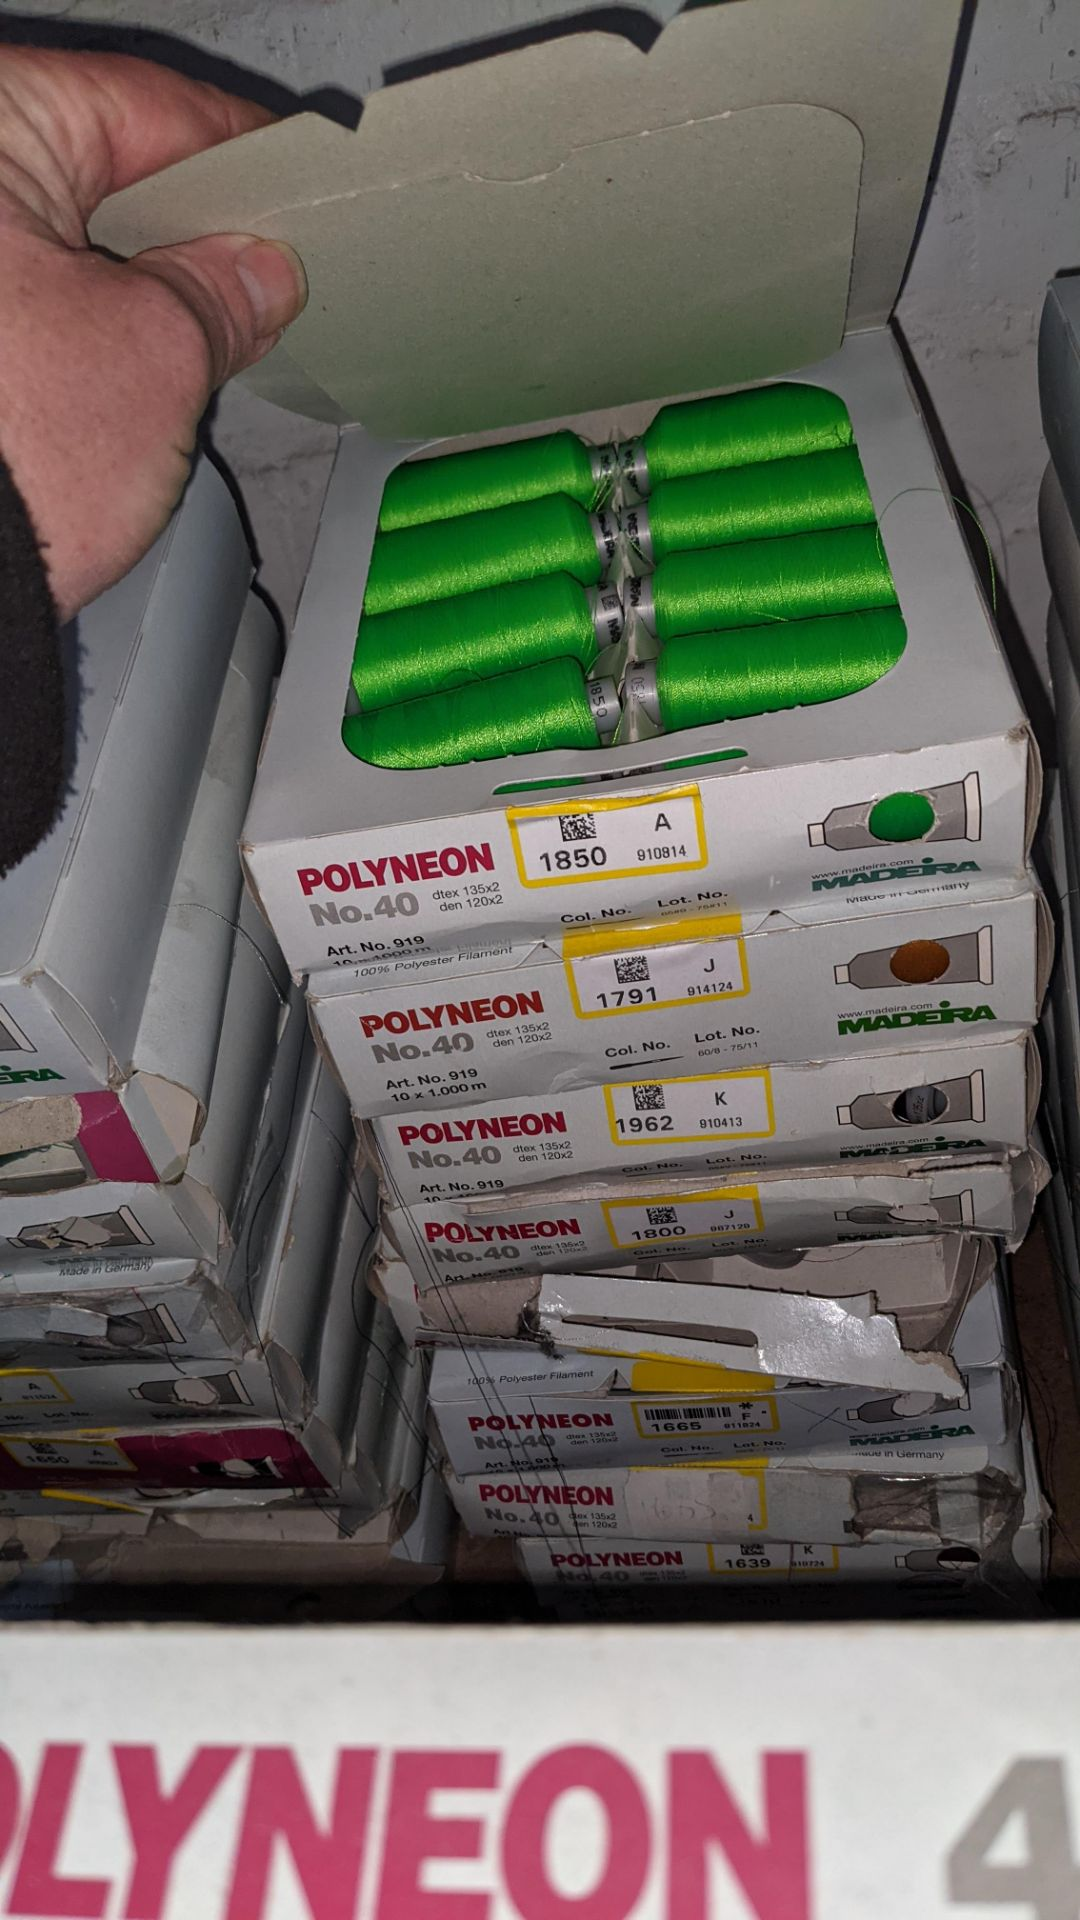 18 boxes of Madeira No. 40 Polyneon embroidery thread - Image 6 of 6